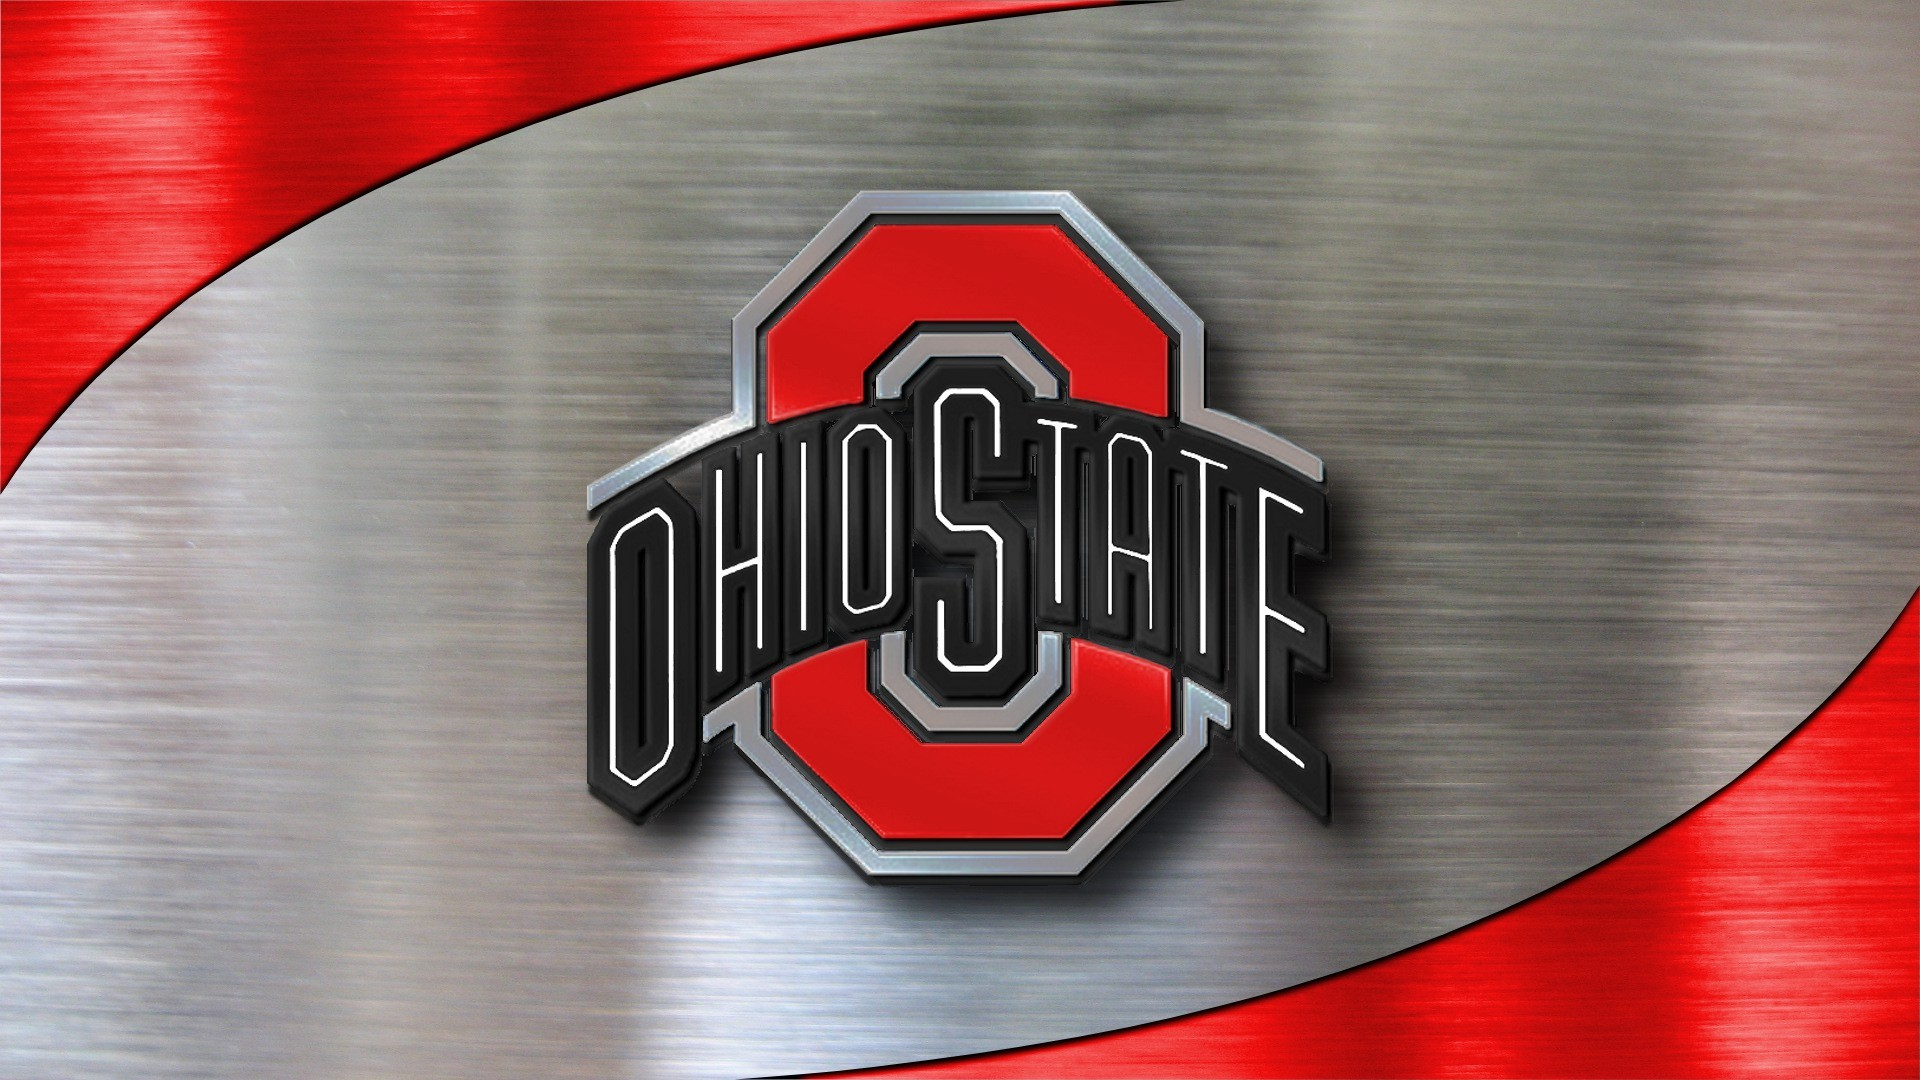 1920x1080 OSU Wallpaper 423 Ohio State Football Wallpaper 30925026